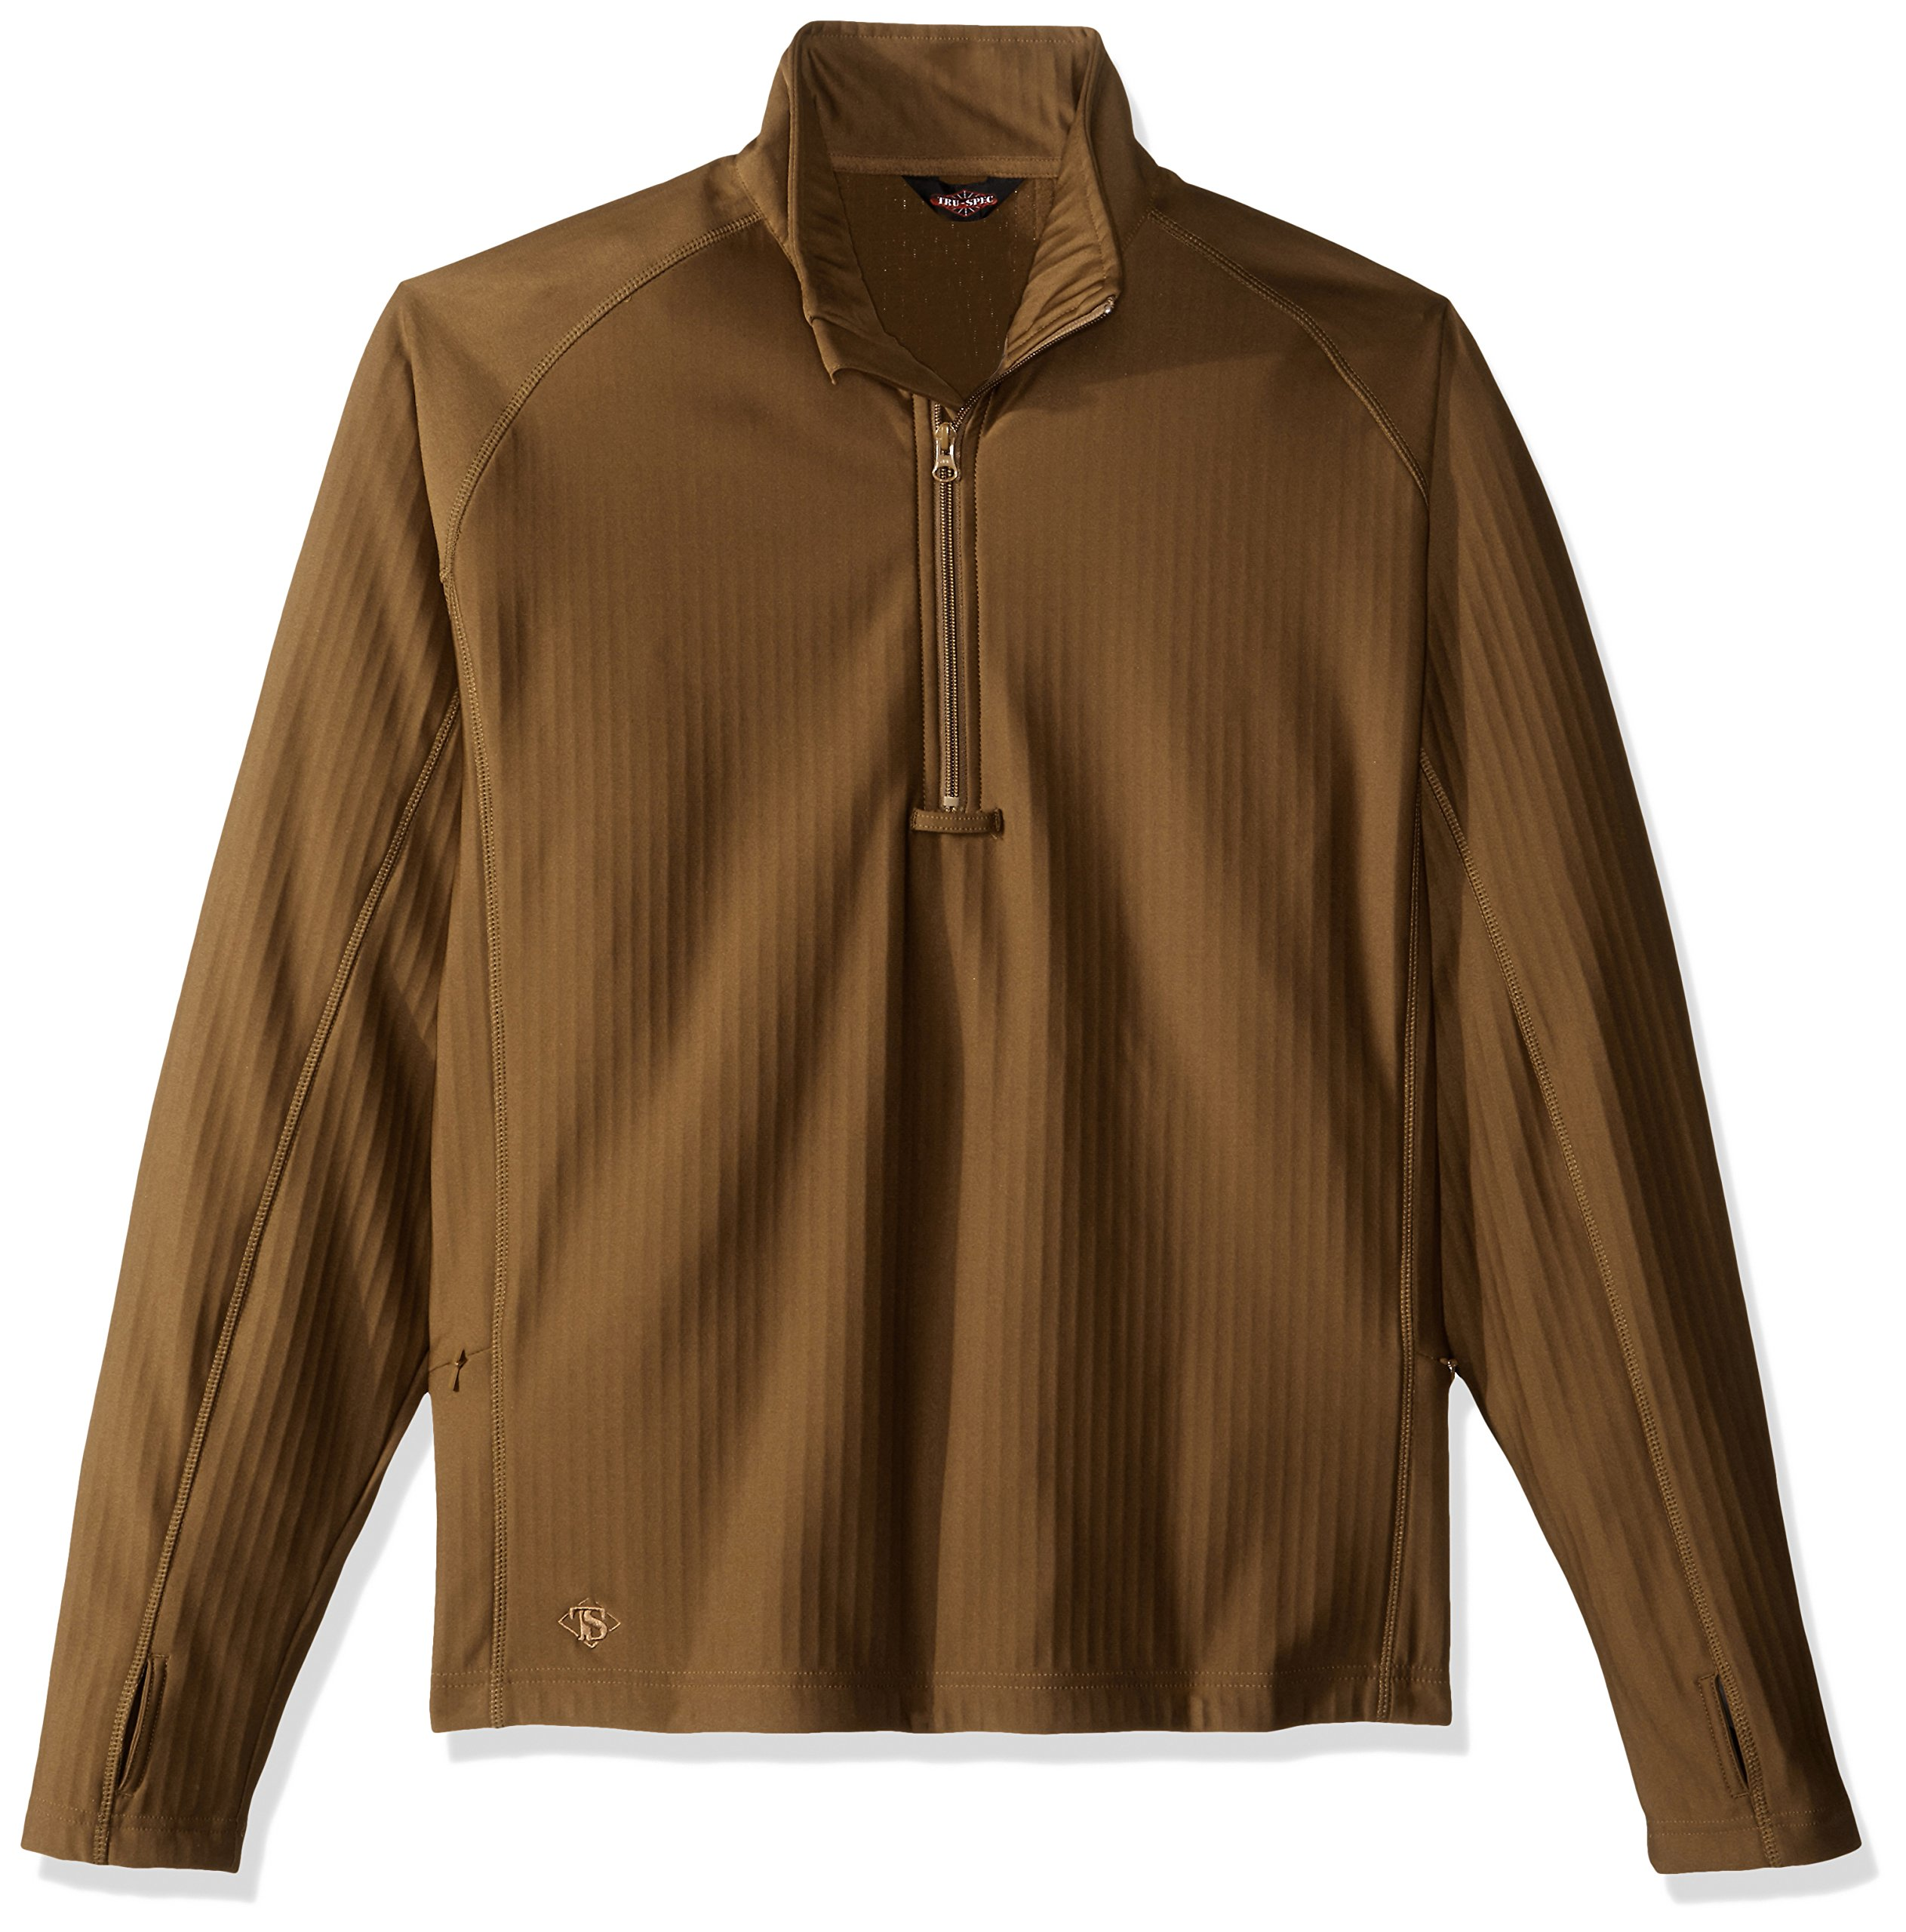 Tru-Spec Shirt, 24-7 Coy Grid Pullover, Zip Through, Coyote, Small